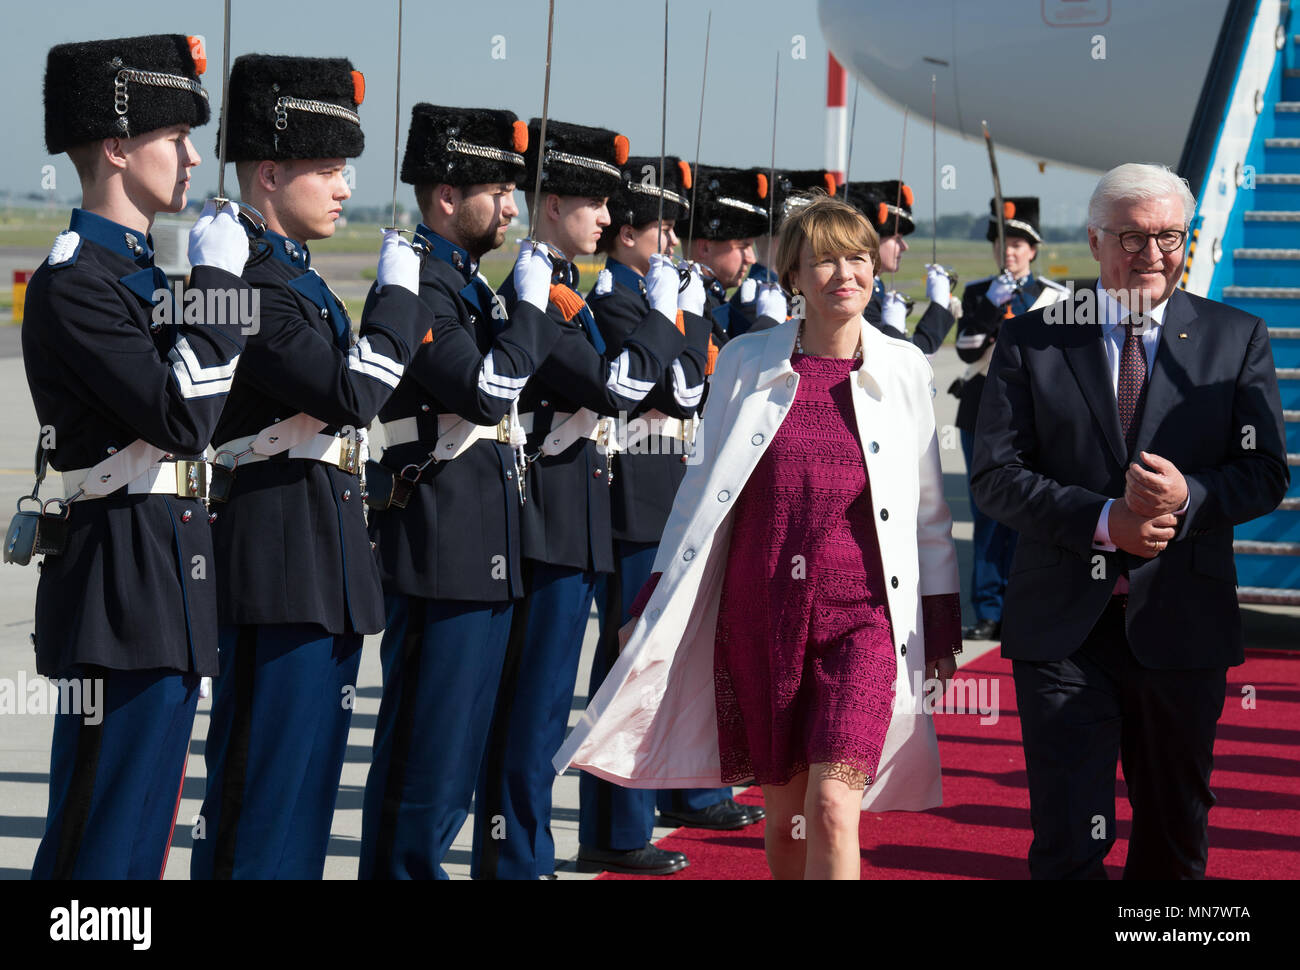 Amsterdam, The Netherlands. 15th May, 2018. German President Frank-Walter Steinmeier and his wife Elke Buedenbender are greeted at Schiphol airport by the guard of honour. Photo: Soeren Stache/dpa Credit: dpa picture alliance/Alamy Live News Stock Photo